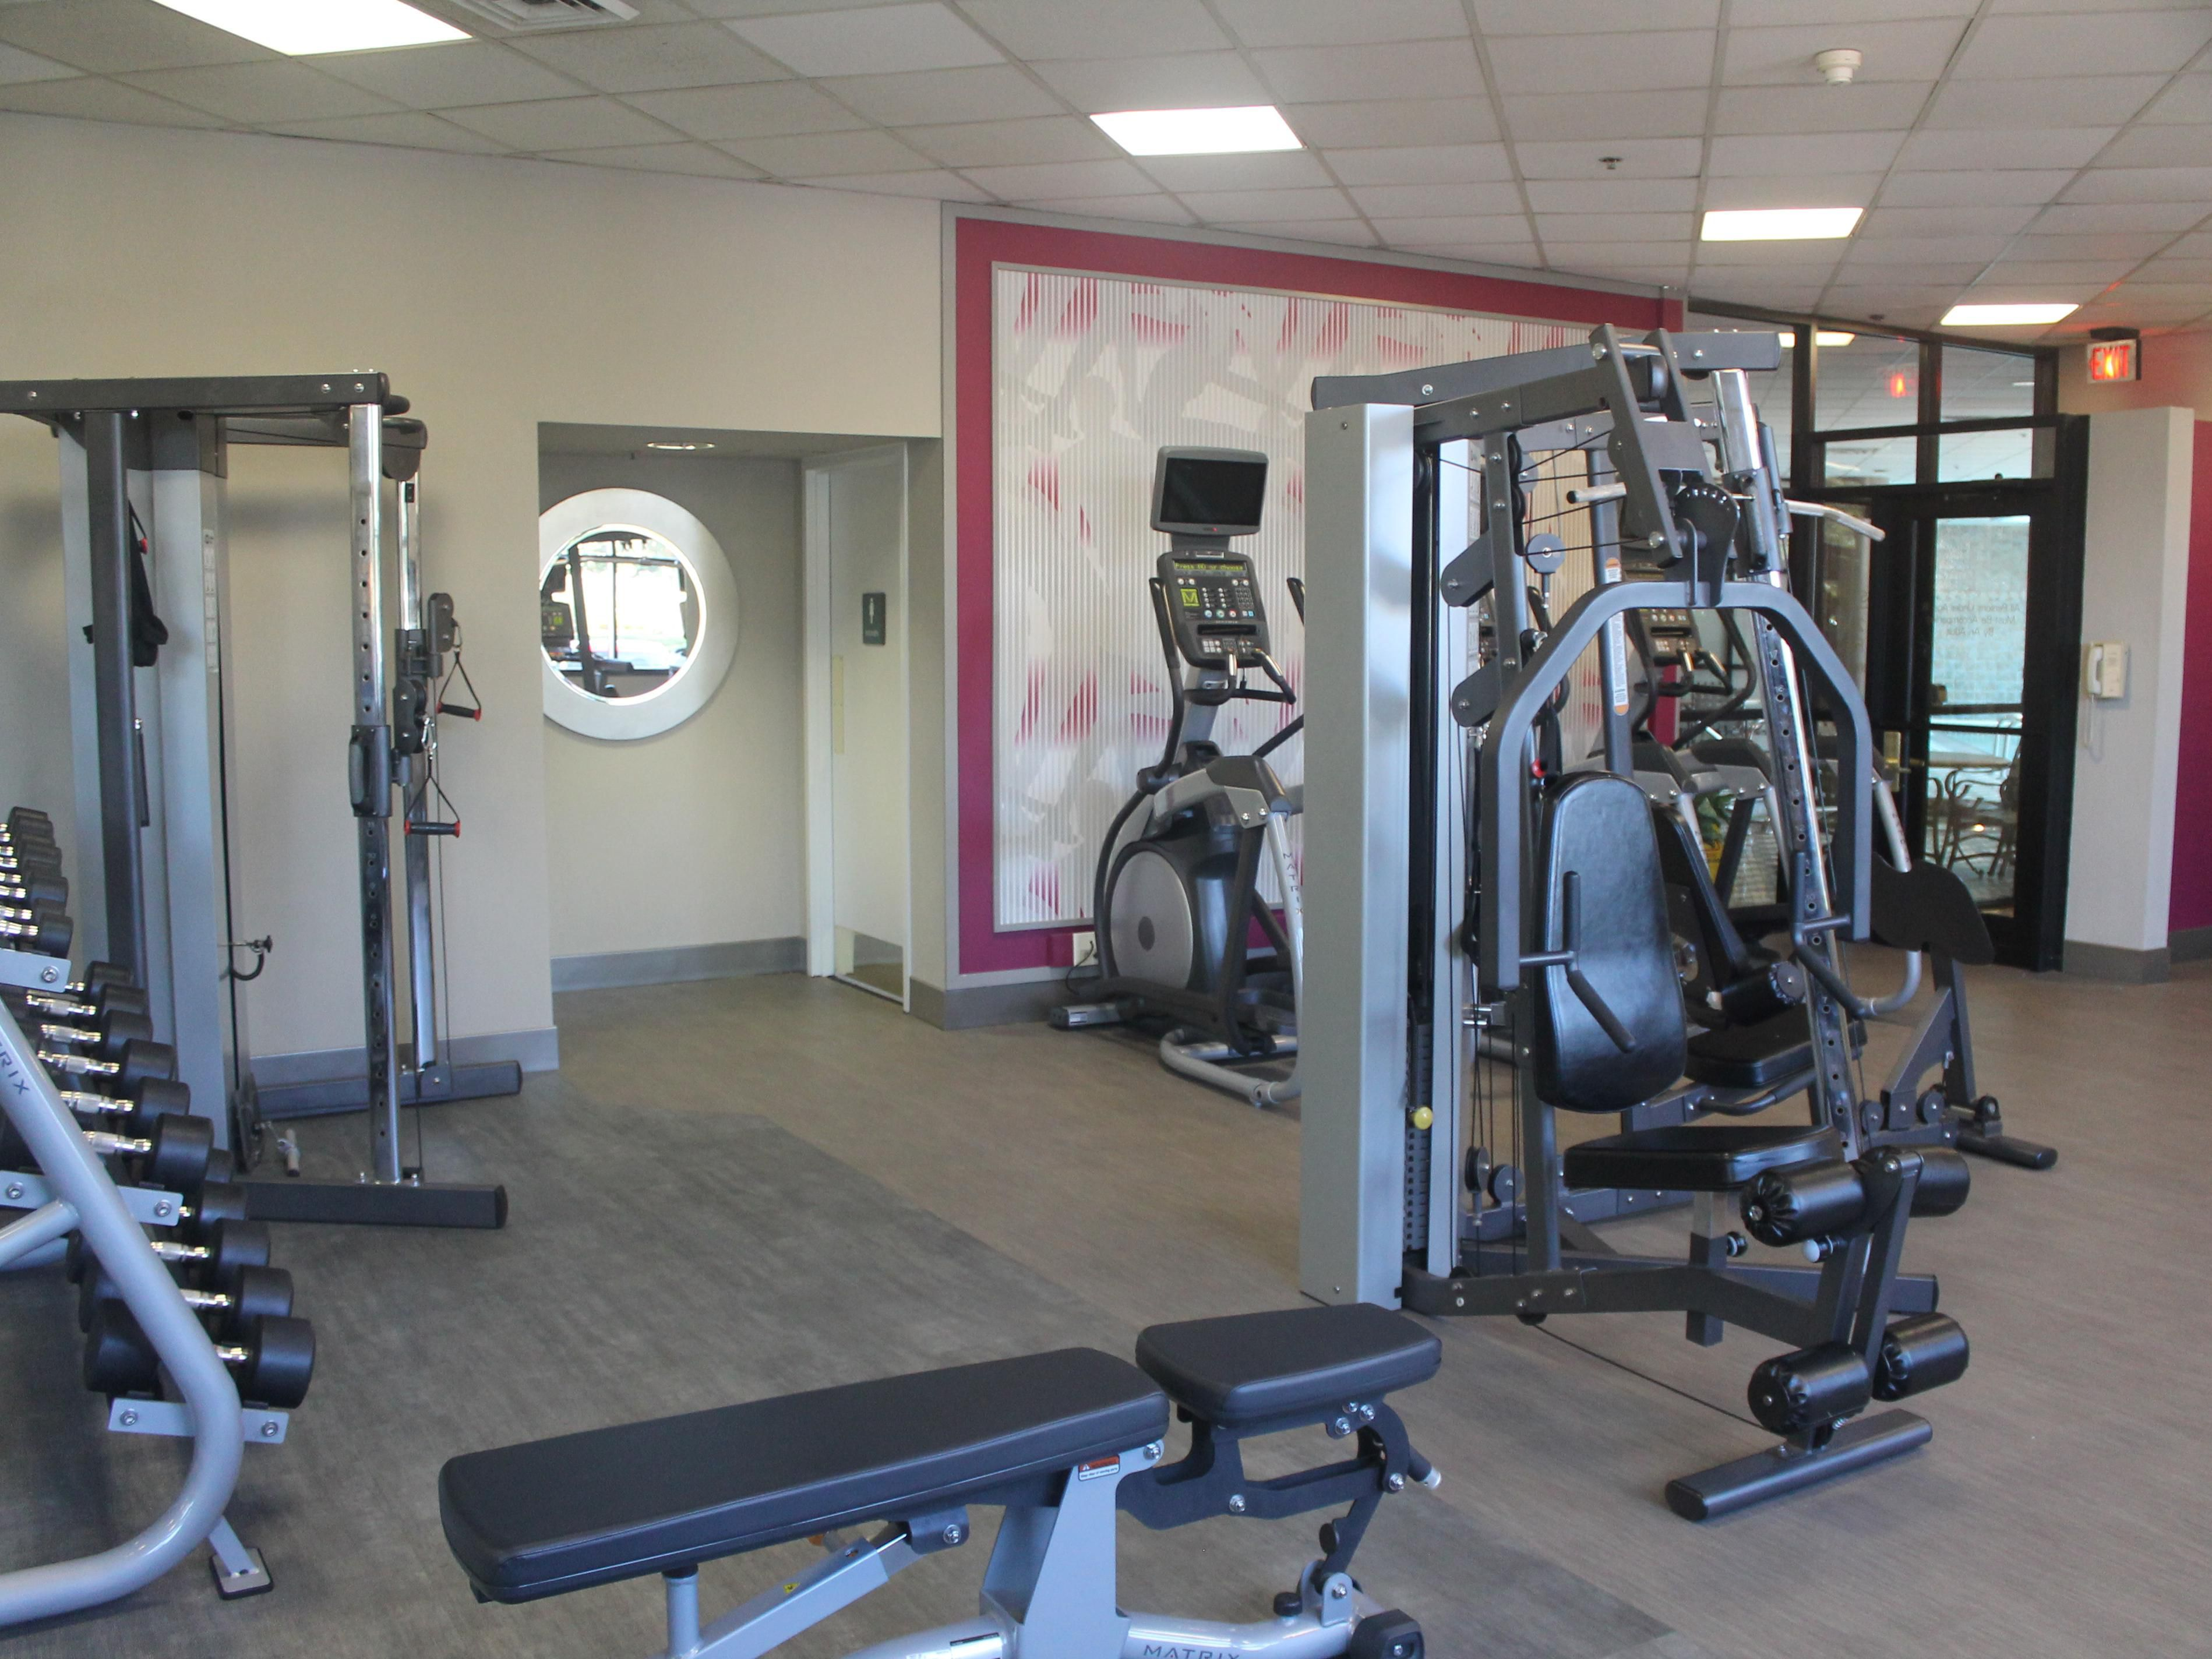 power see weight to solution sports how your choose en resources na precor for strength authority needs start img equipment shopping bench gyms au complete our ready gym